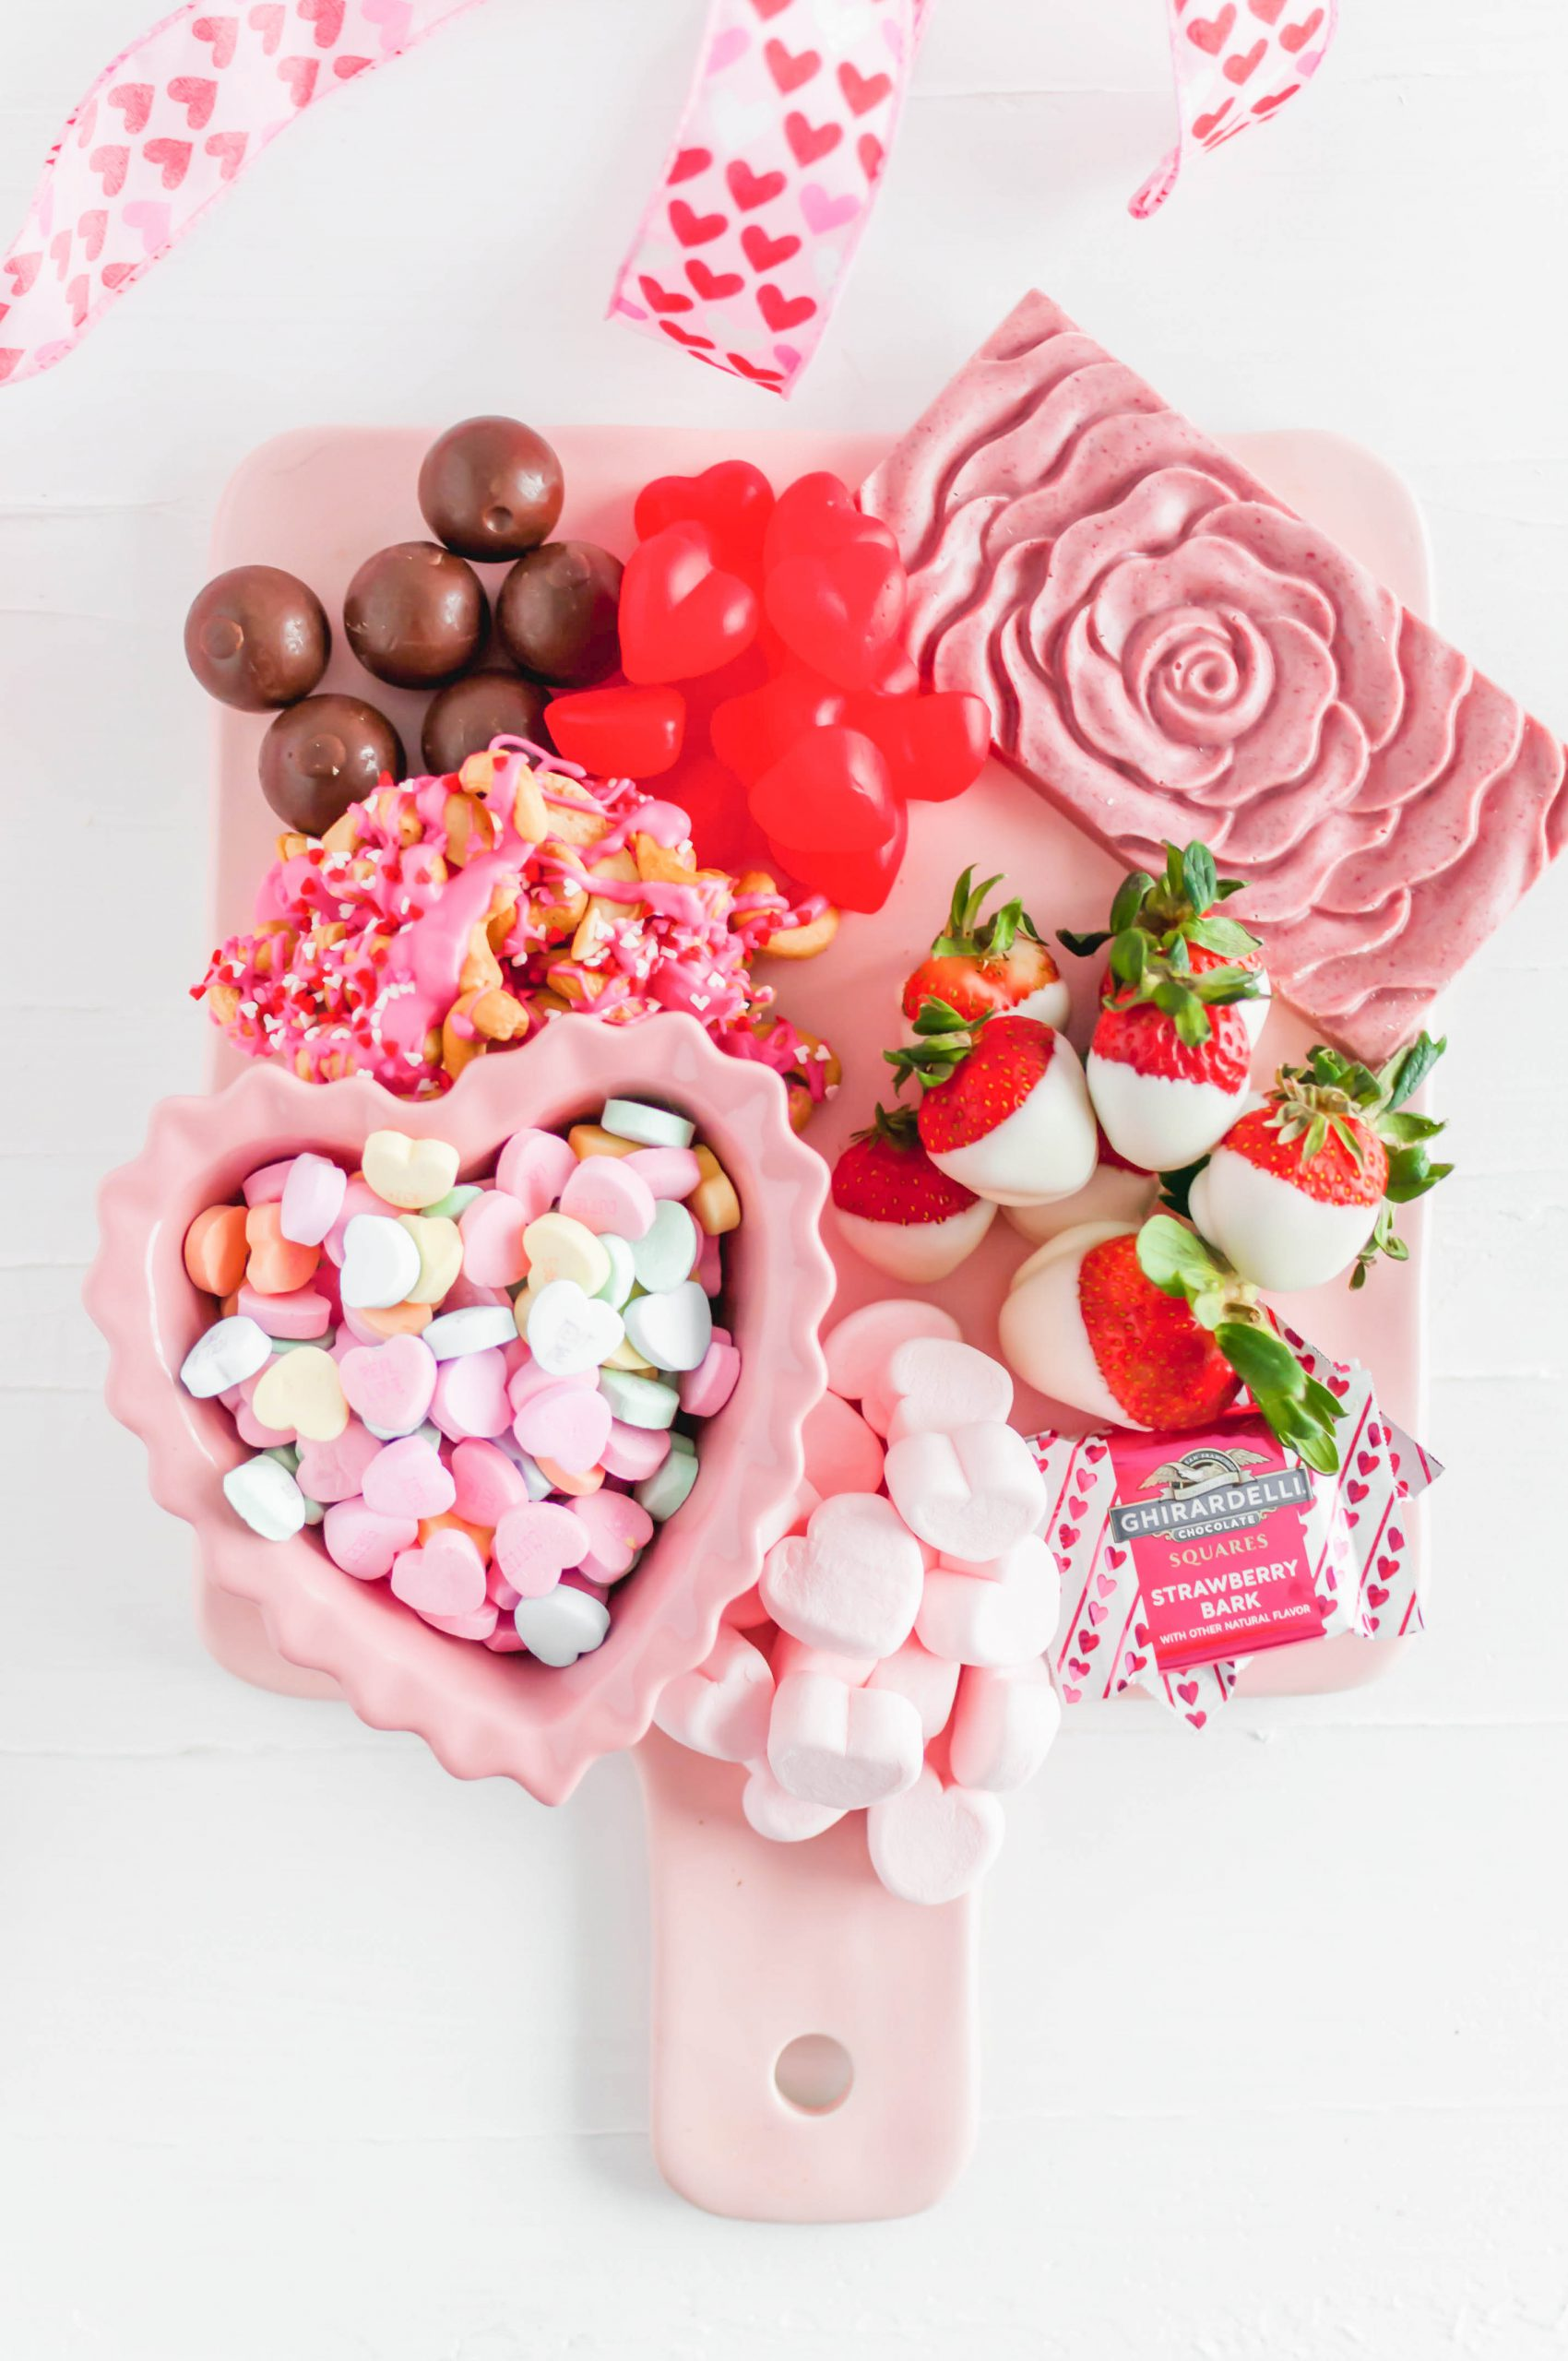 Keep your Valentine's dessert easy, fun, delicious and festive this year with this Valentine's Dessert Board. A few simple, homemade treats mixed in with some adorable store-bought options.